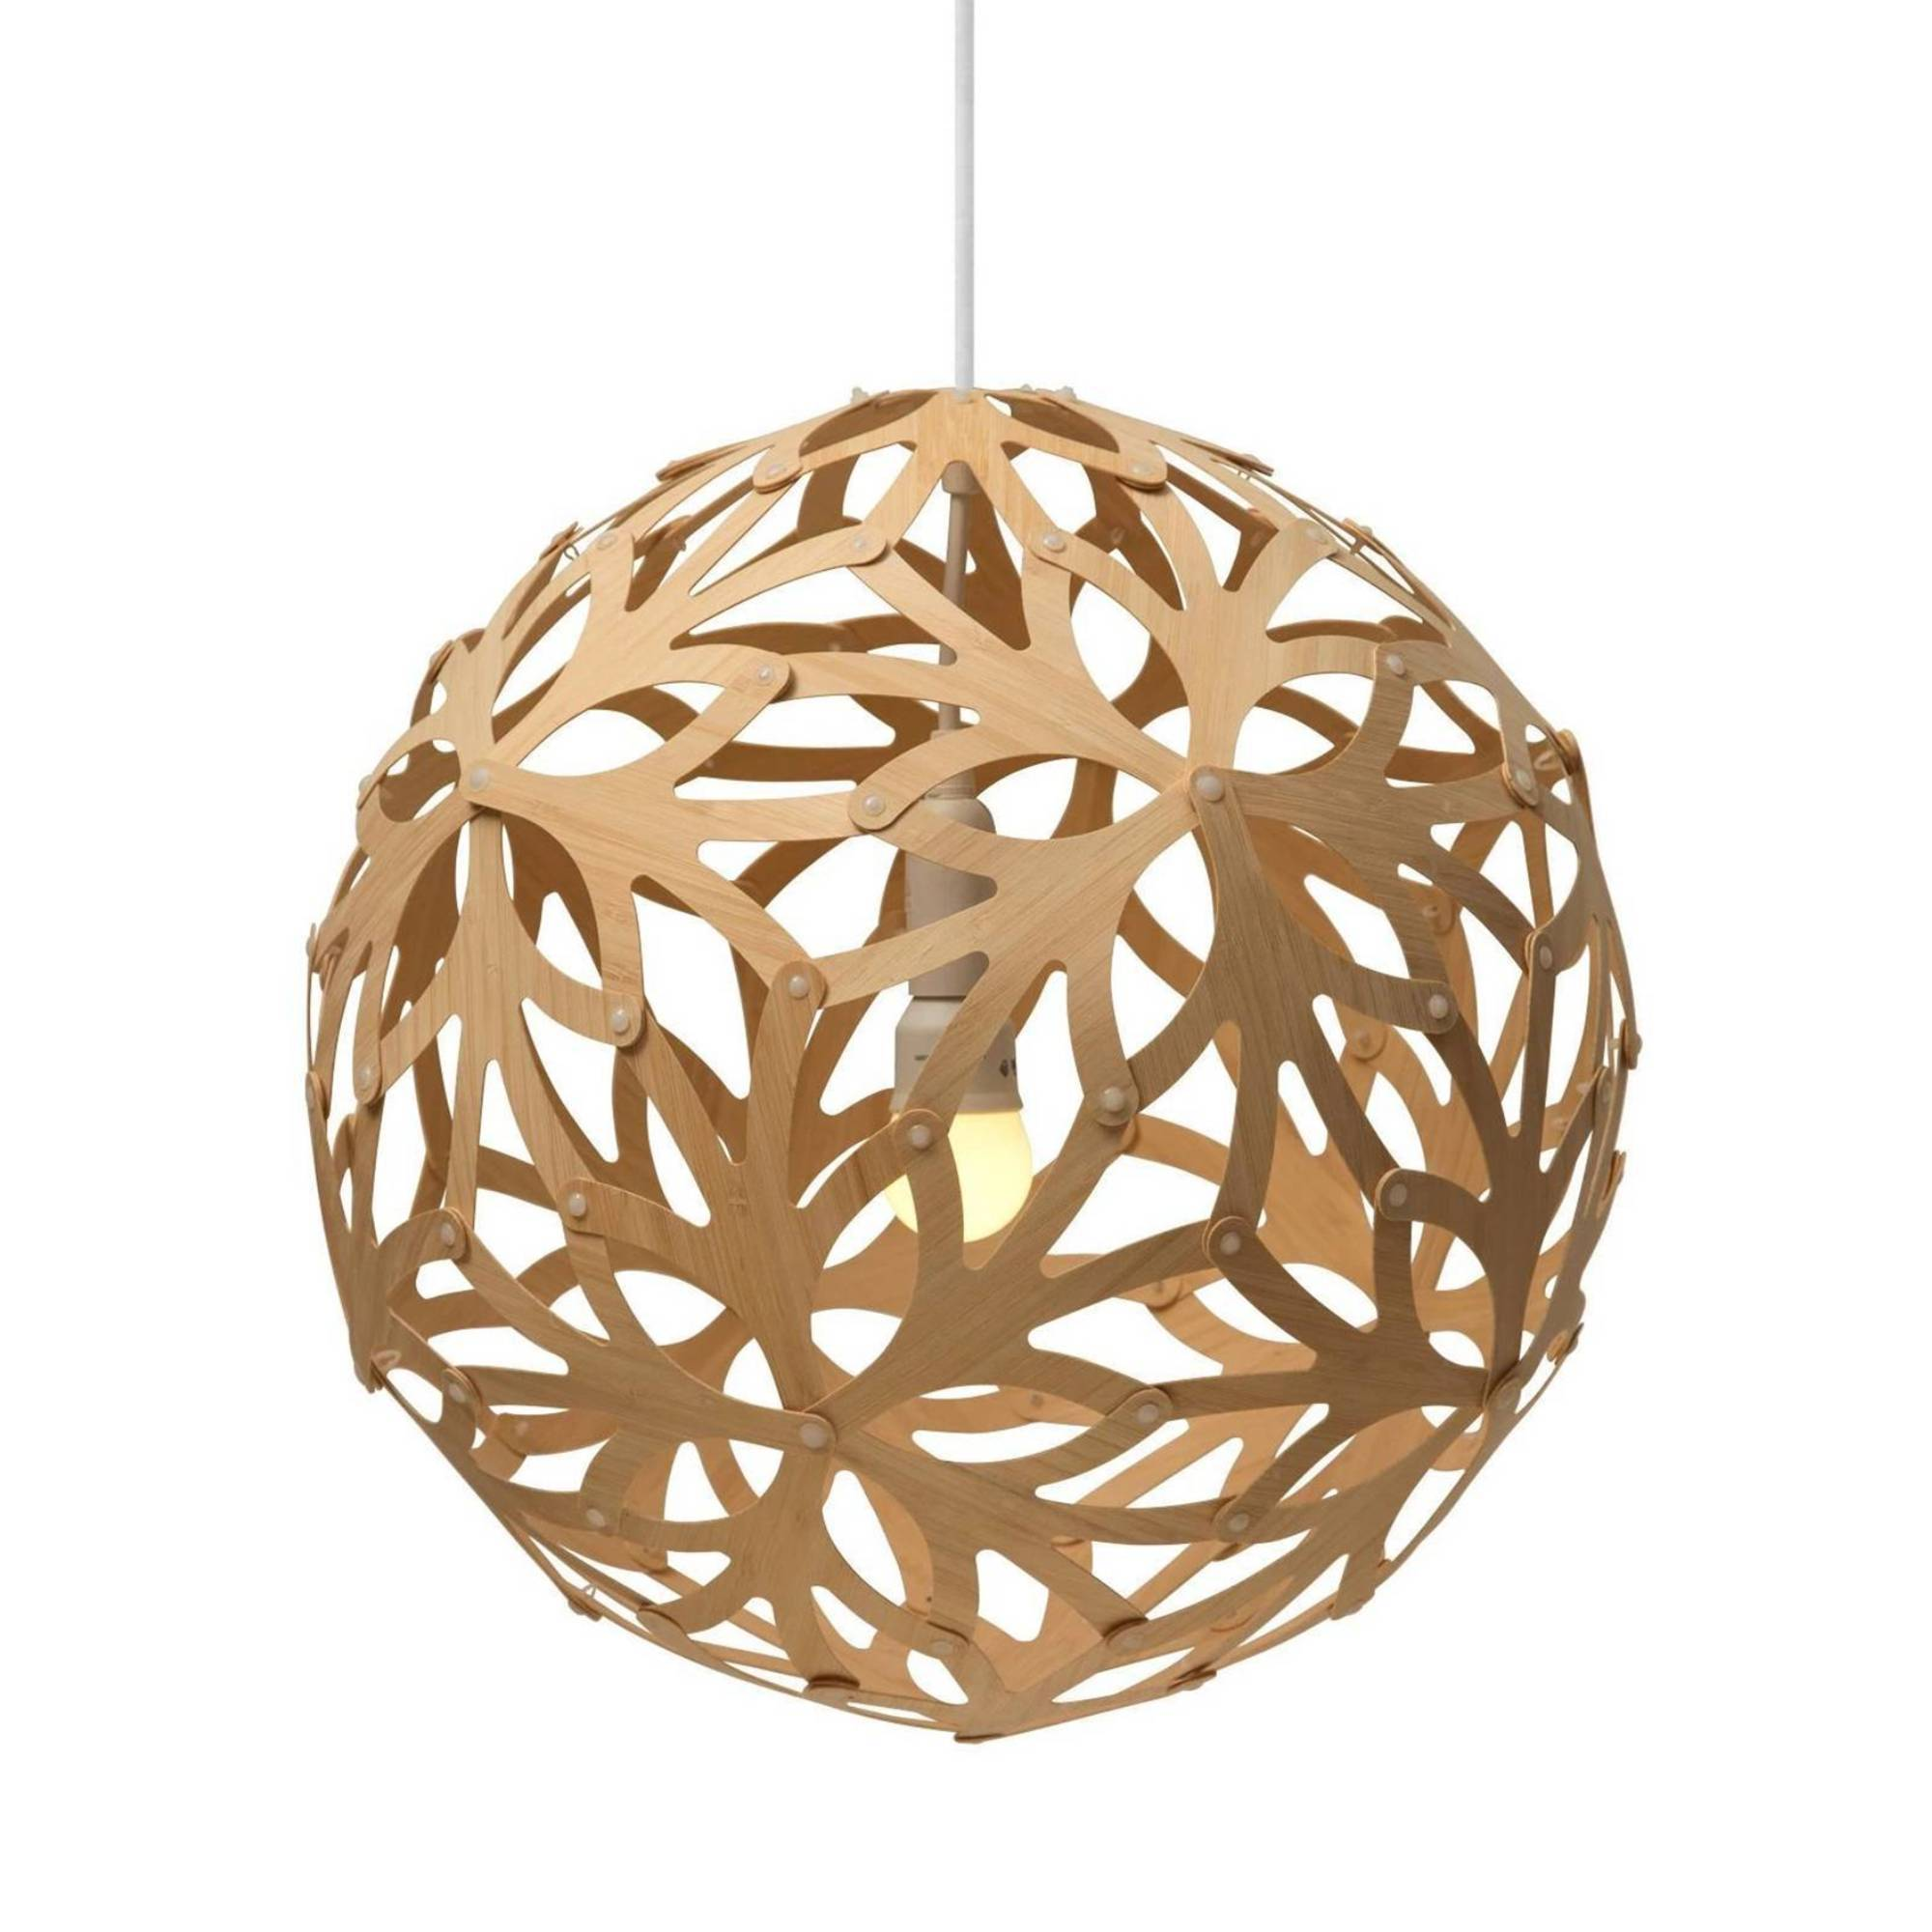 Floral Pendant Light: 800 + Natural